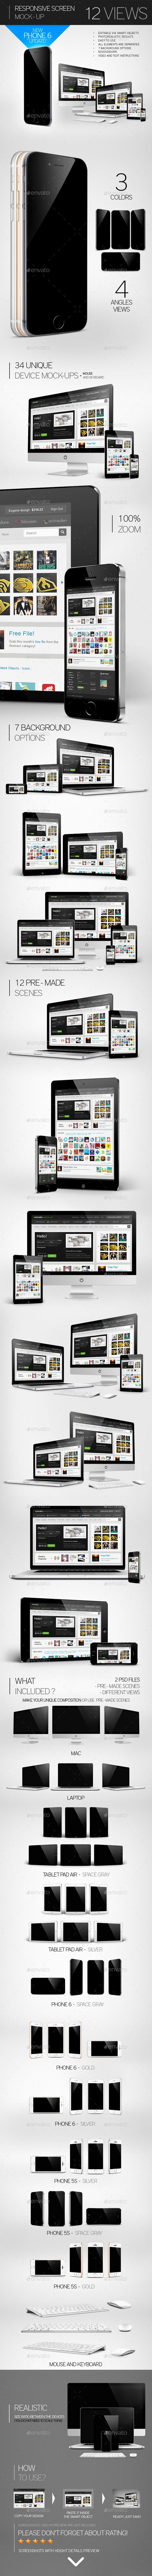 Responsive Screen Mock-Up Download here: https://graphicriver.net/item/responsive-screen-mockup/7414672?ref=KlitVogli